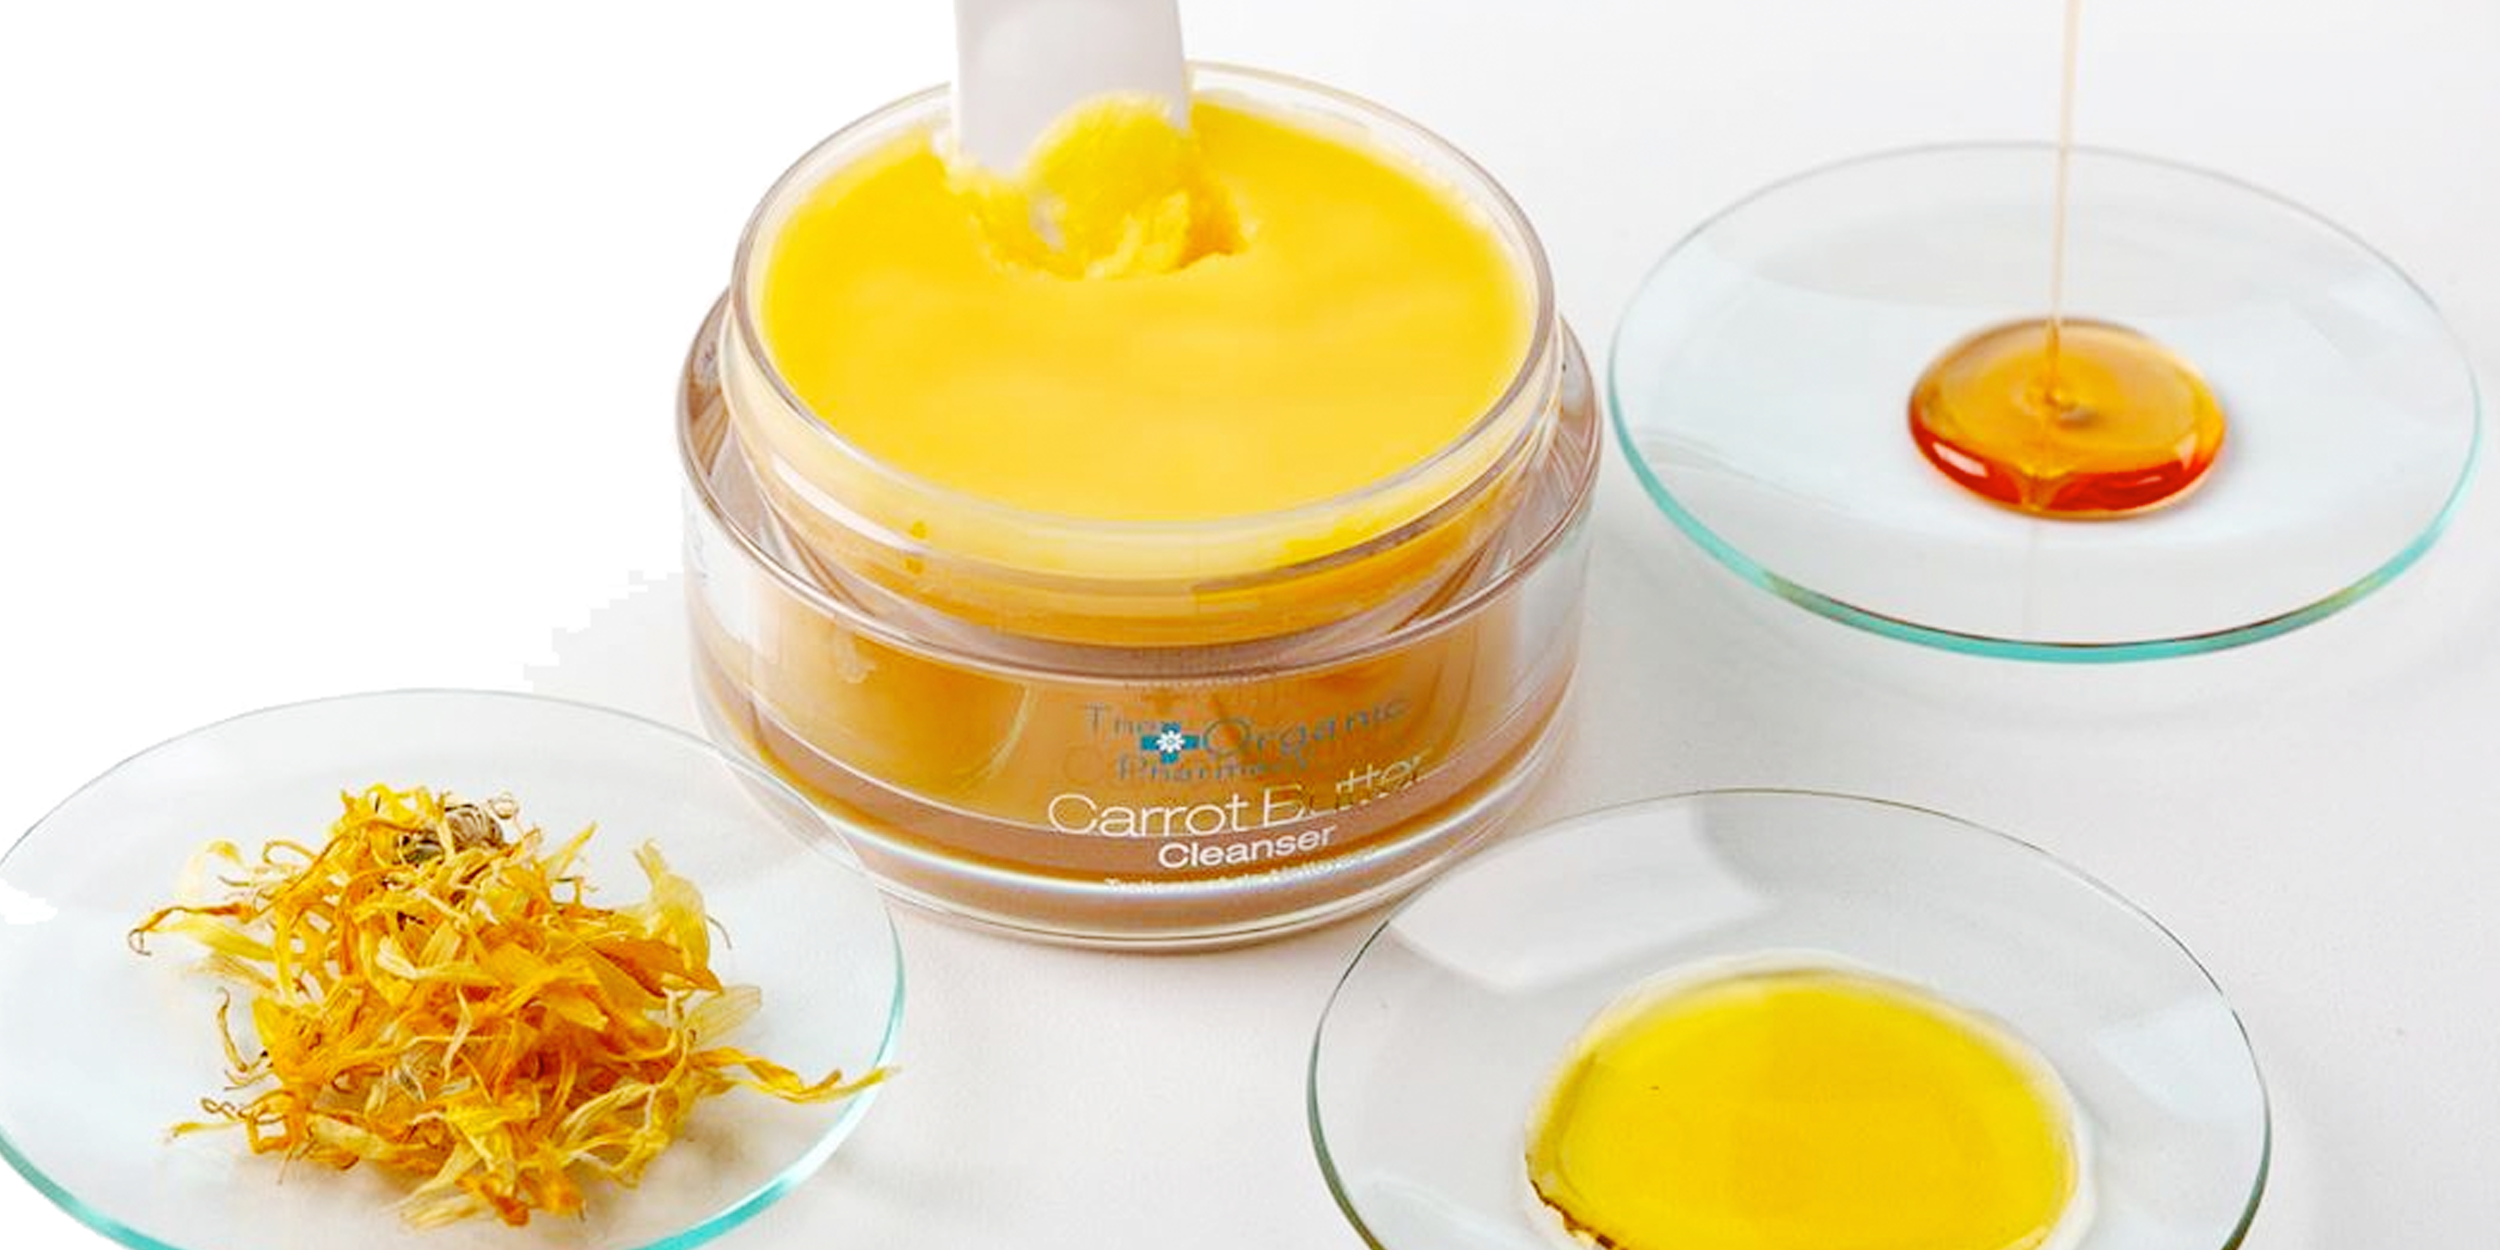 Carrot Butter Home Lymphatic Massage Kit